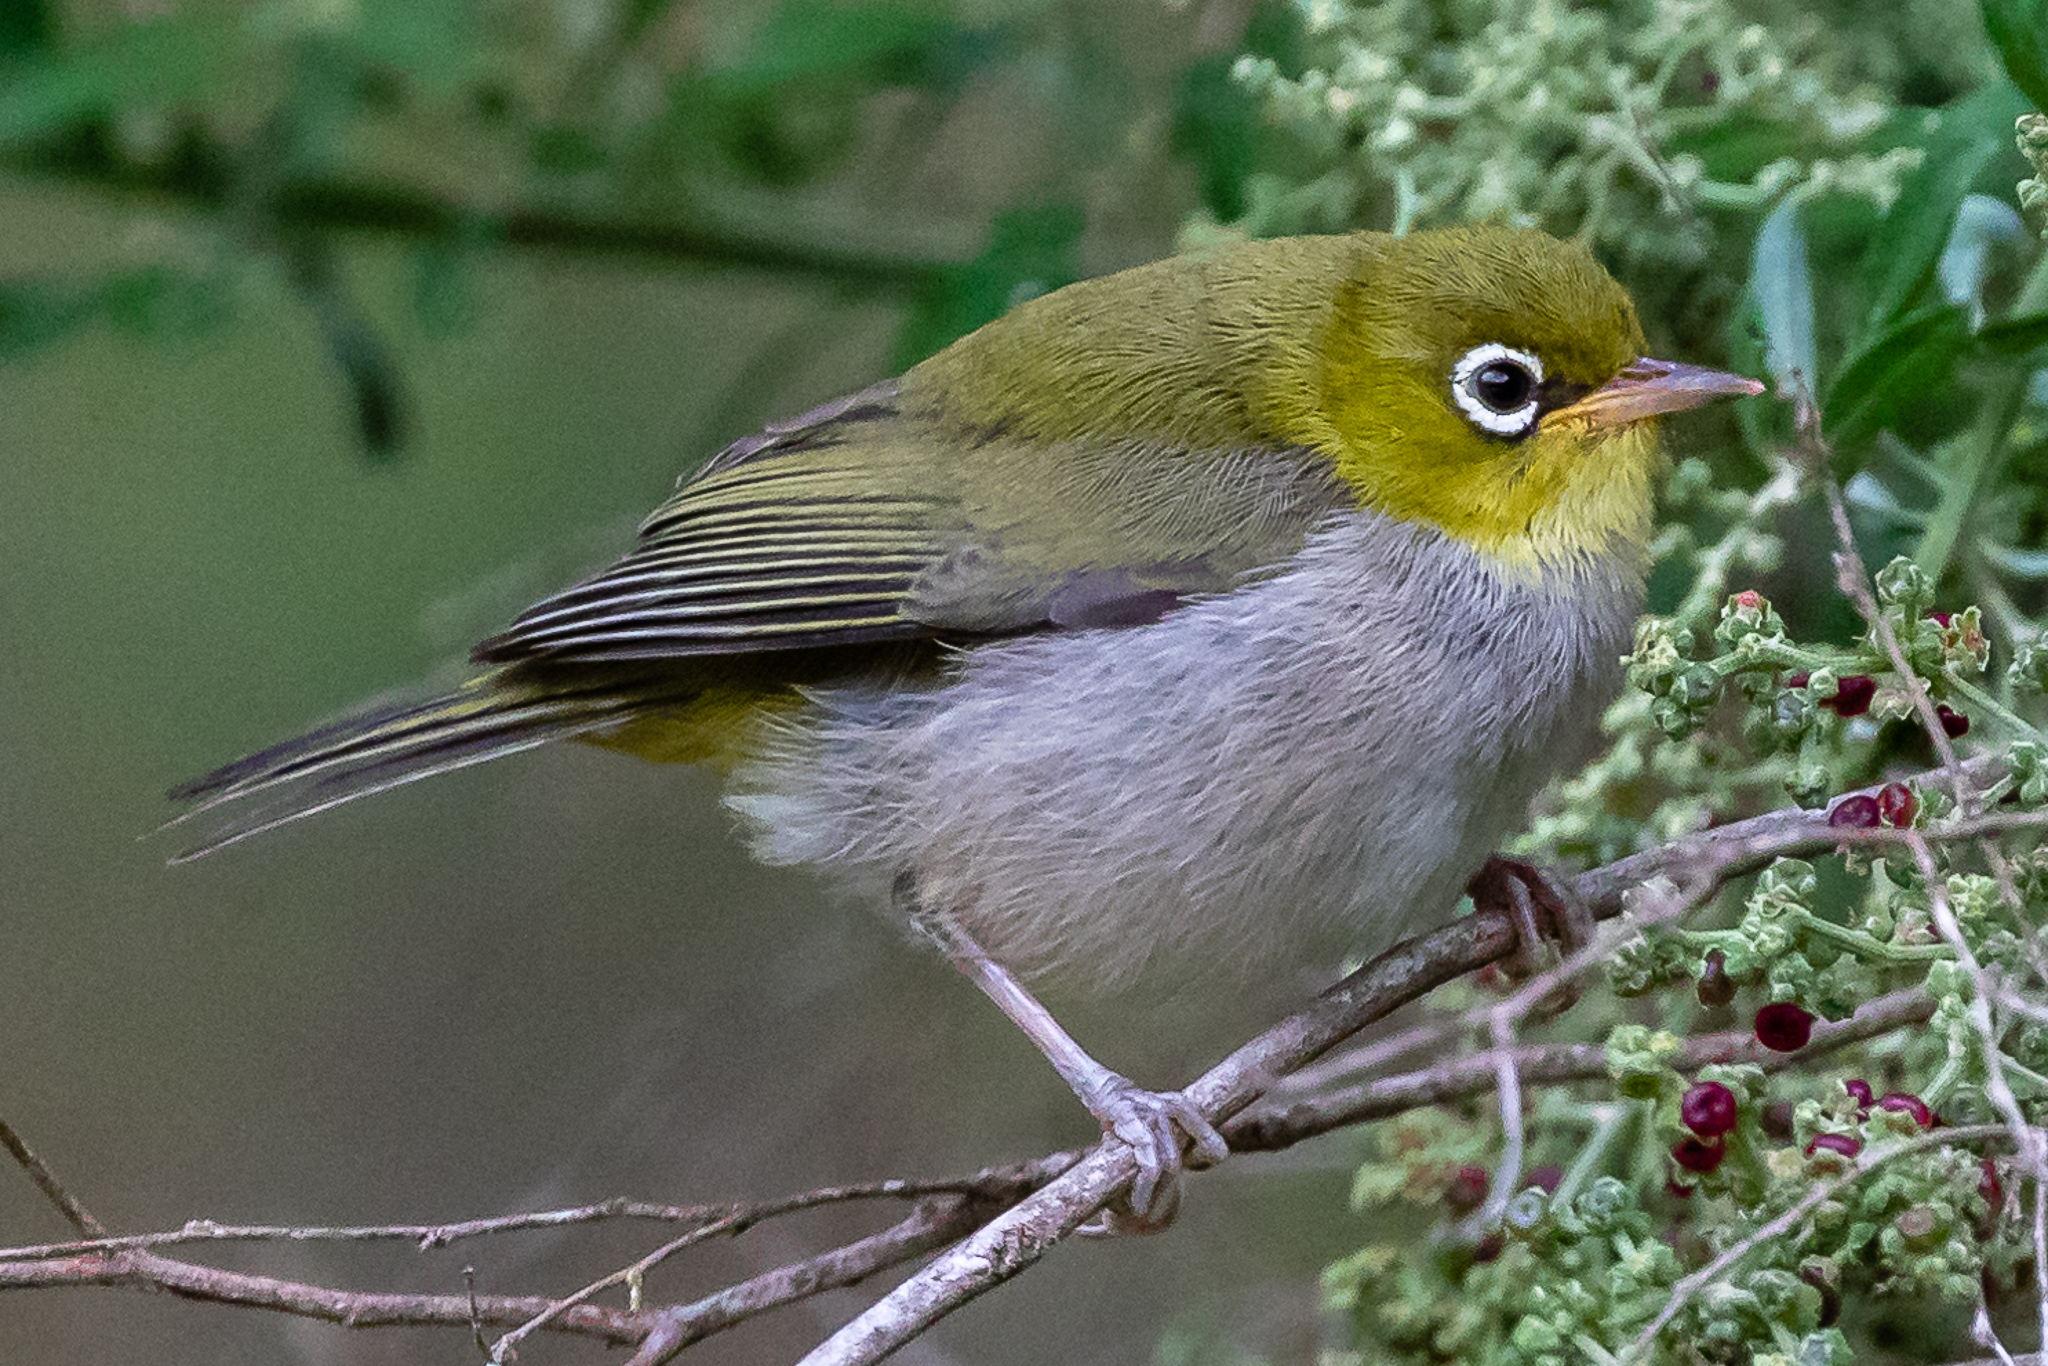 The Western Silvereye varies from other Australian races of SIlvereye having a back coloured olive green rather than blue-grey.